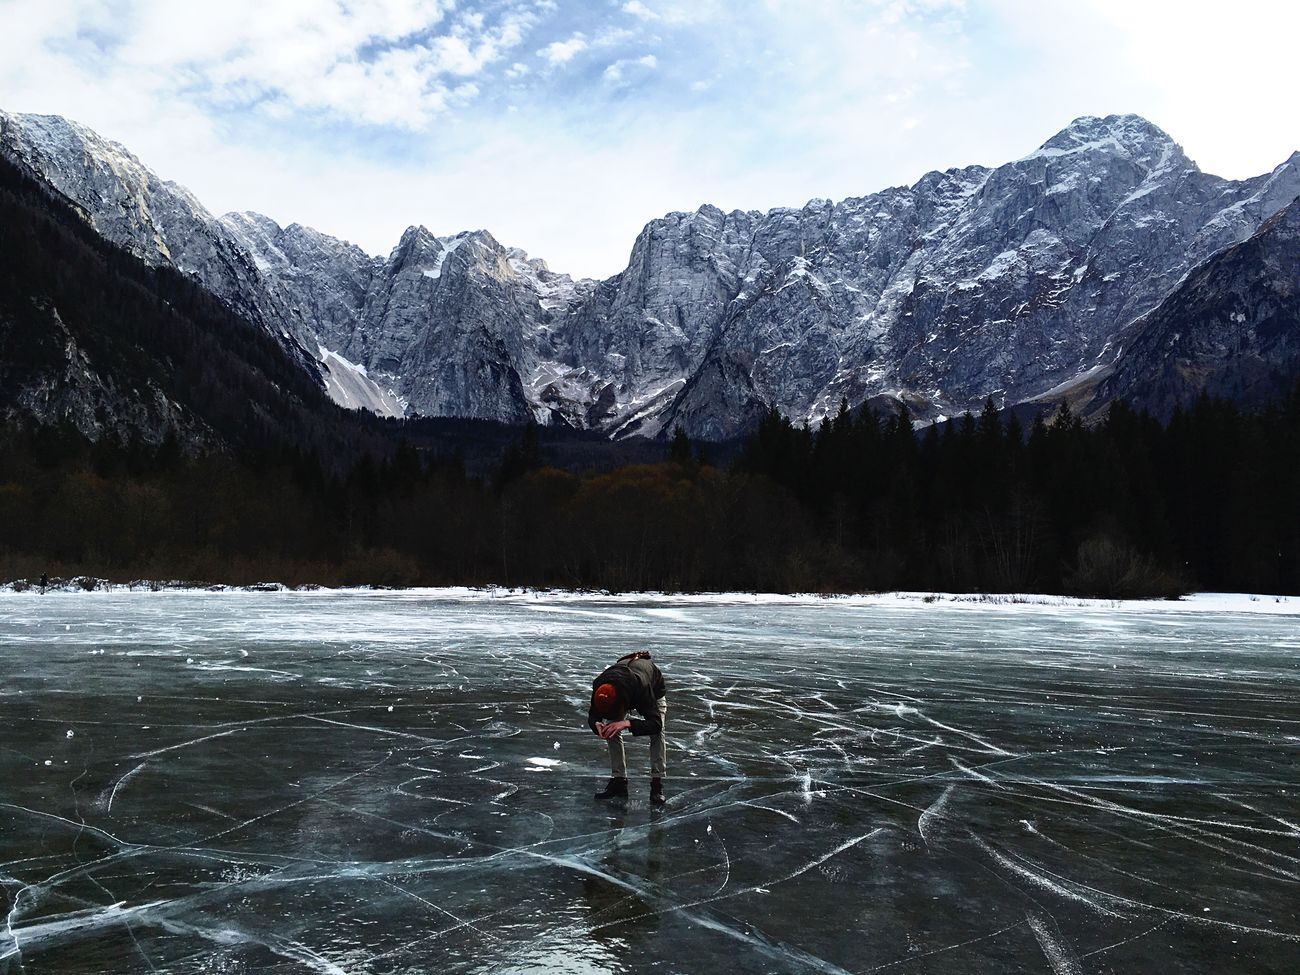 Ice Frozen Frozen Lake Frozen Nature Water Lake Winter Cold Temperature Cold Days Cold Winter ❄⛄ Fusine Italy Taking Photos Mountain Alps Stunning Stunning_shots Landscape Landscape_Collection Landscape_photography Mountians Mountian View Cold